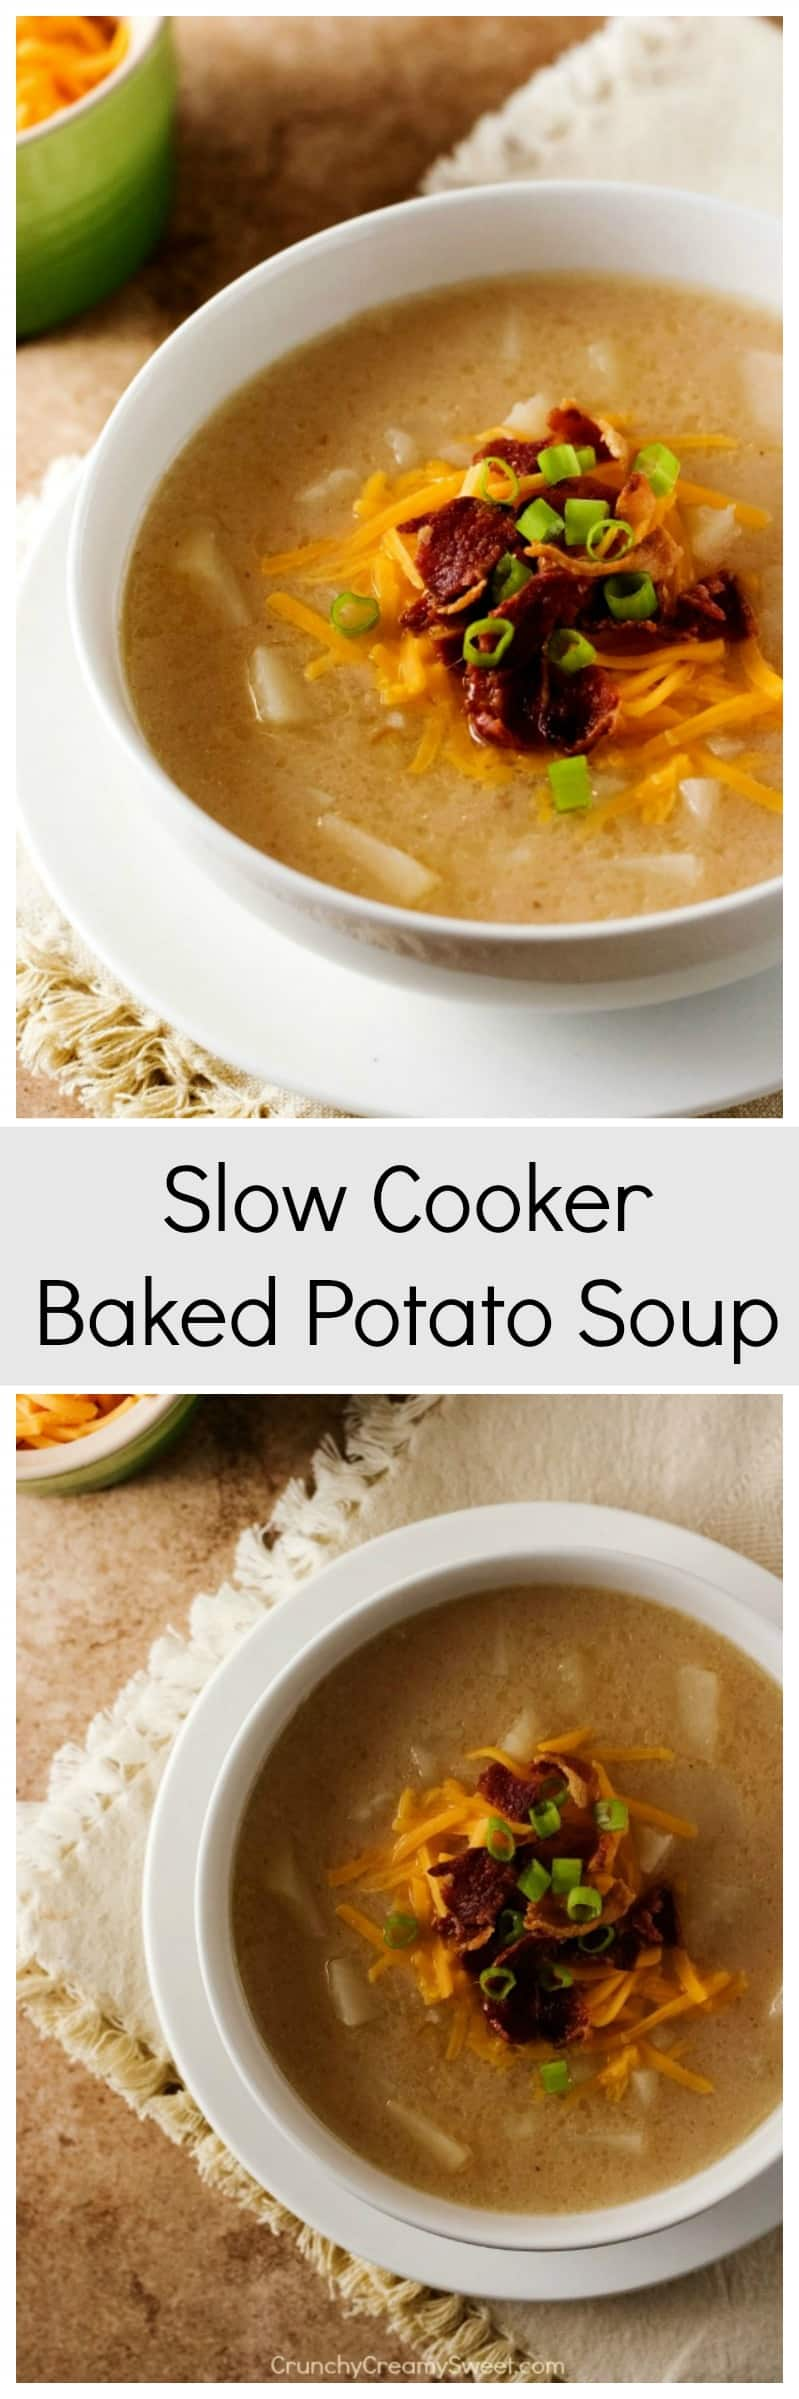 Slow Cooker Baked Potato Soup easy soup yet packed with lots of flavor Slow Cooker Baked Potato Soup